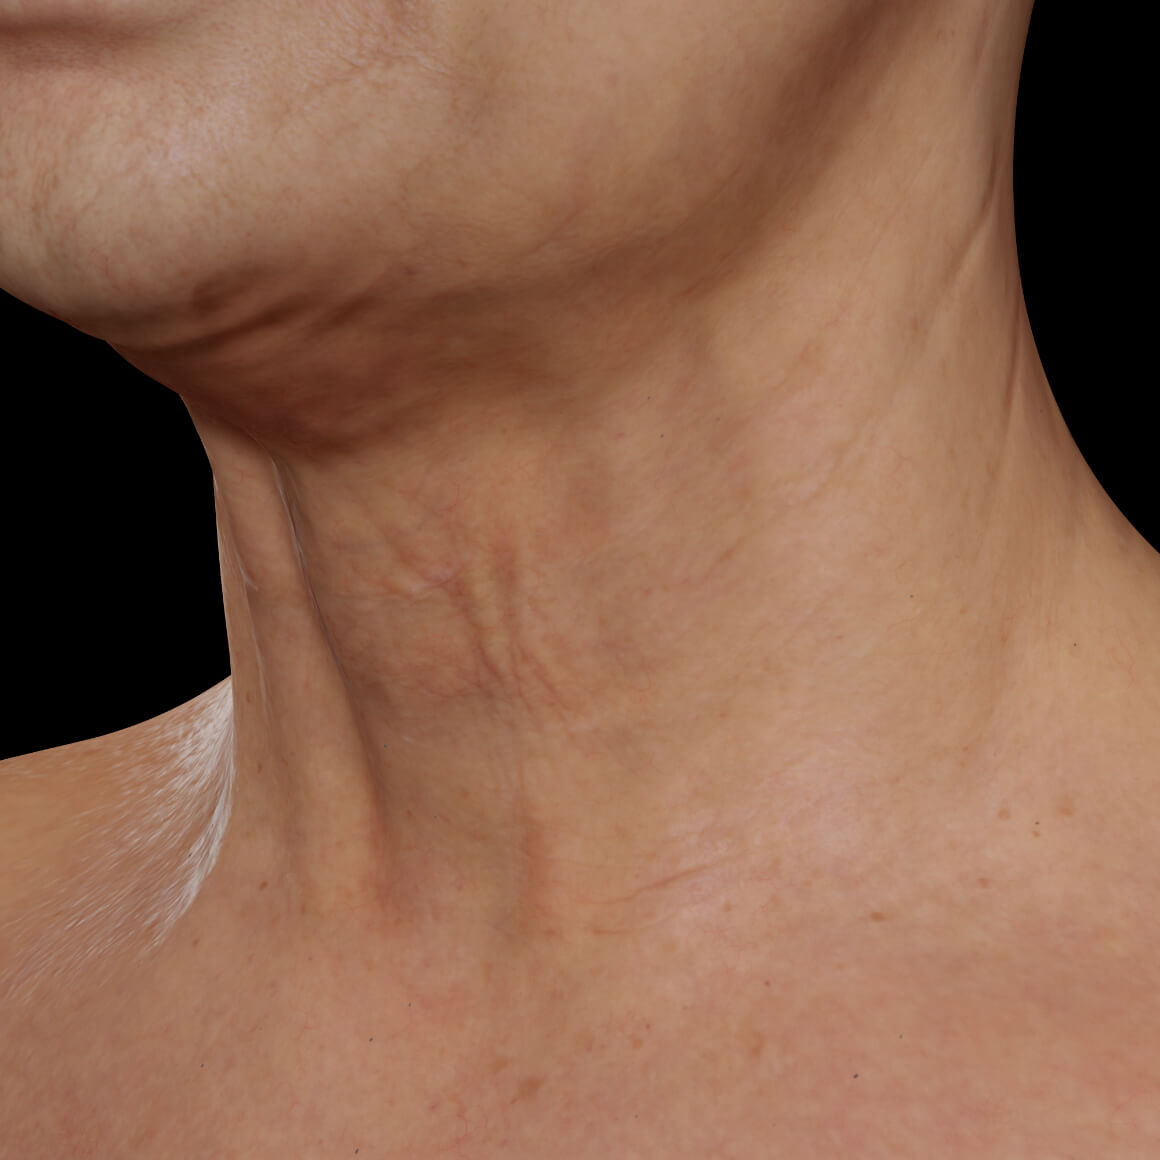 Clinique Chloé female patient positioned at an angle after Venus Legacy neck skin tightening treatments